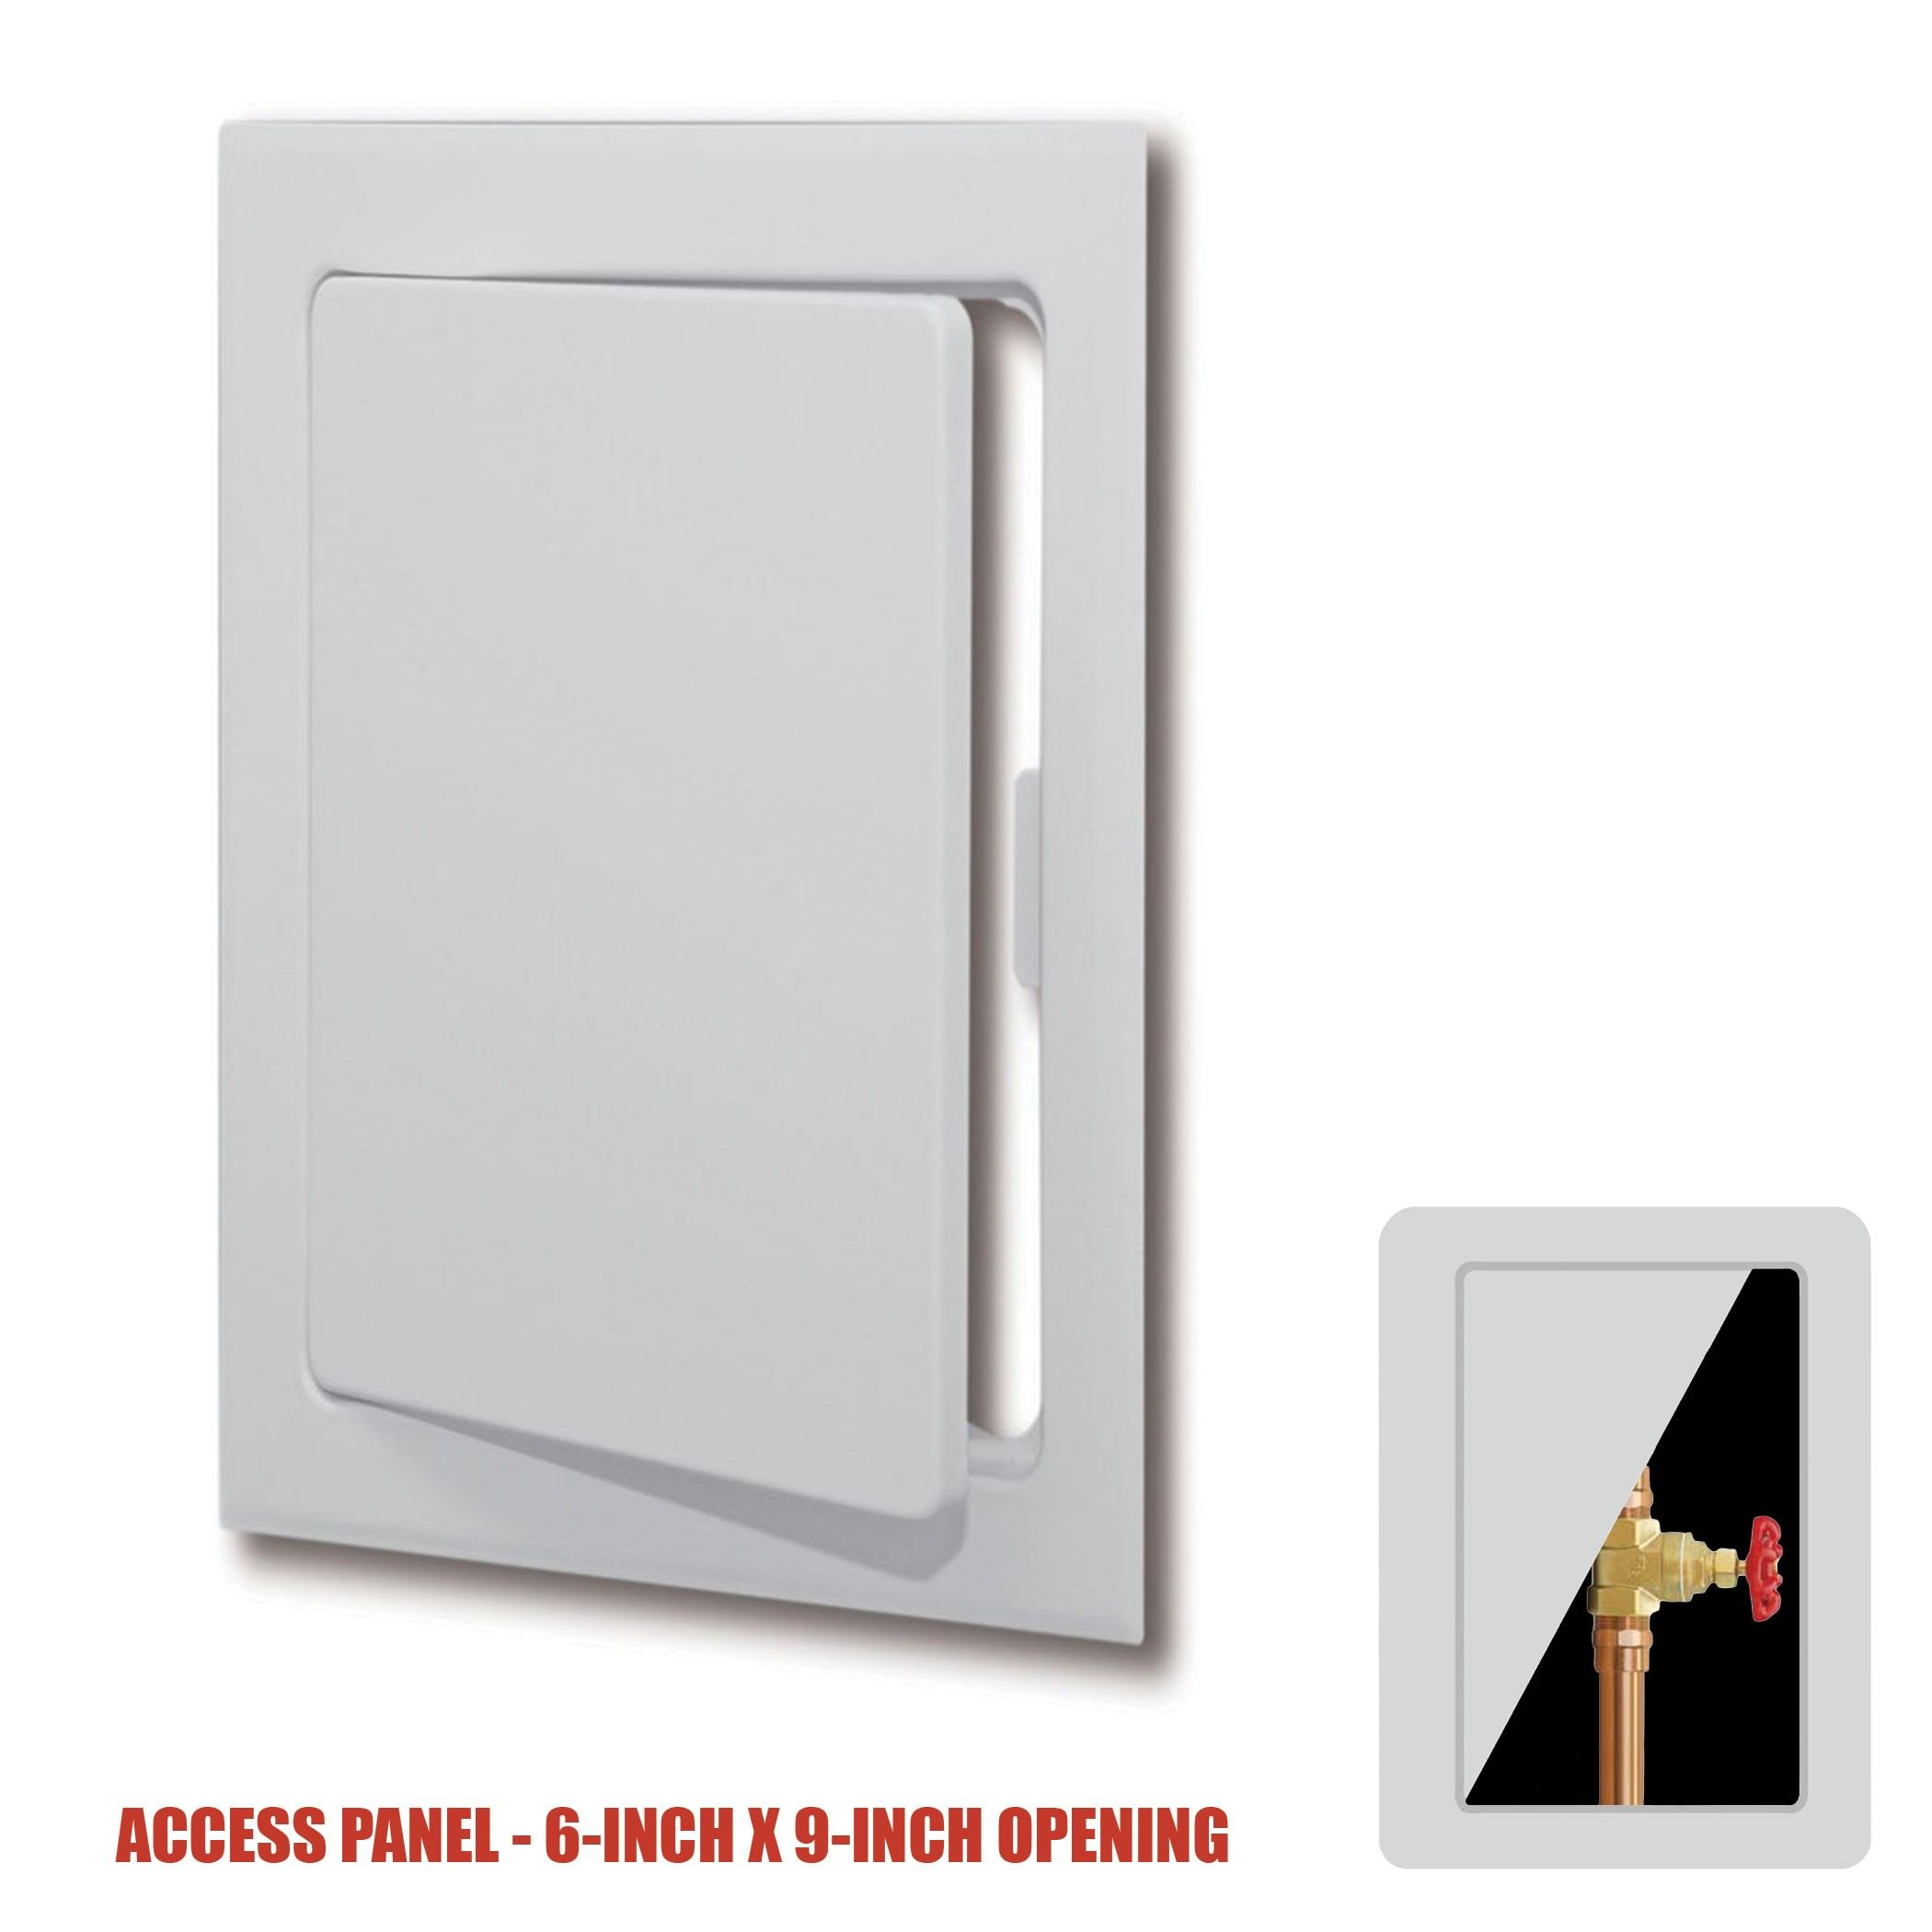 plumbest plastic snap ease wall or ceiling access panel for 6